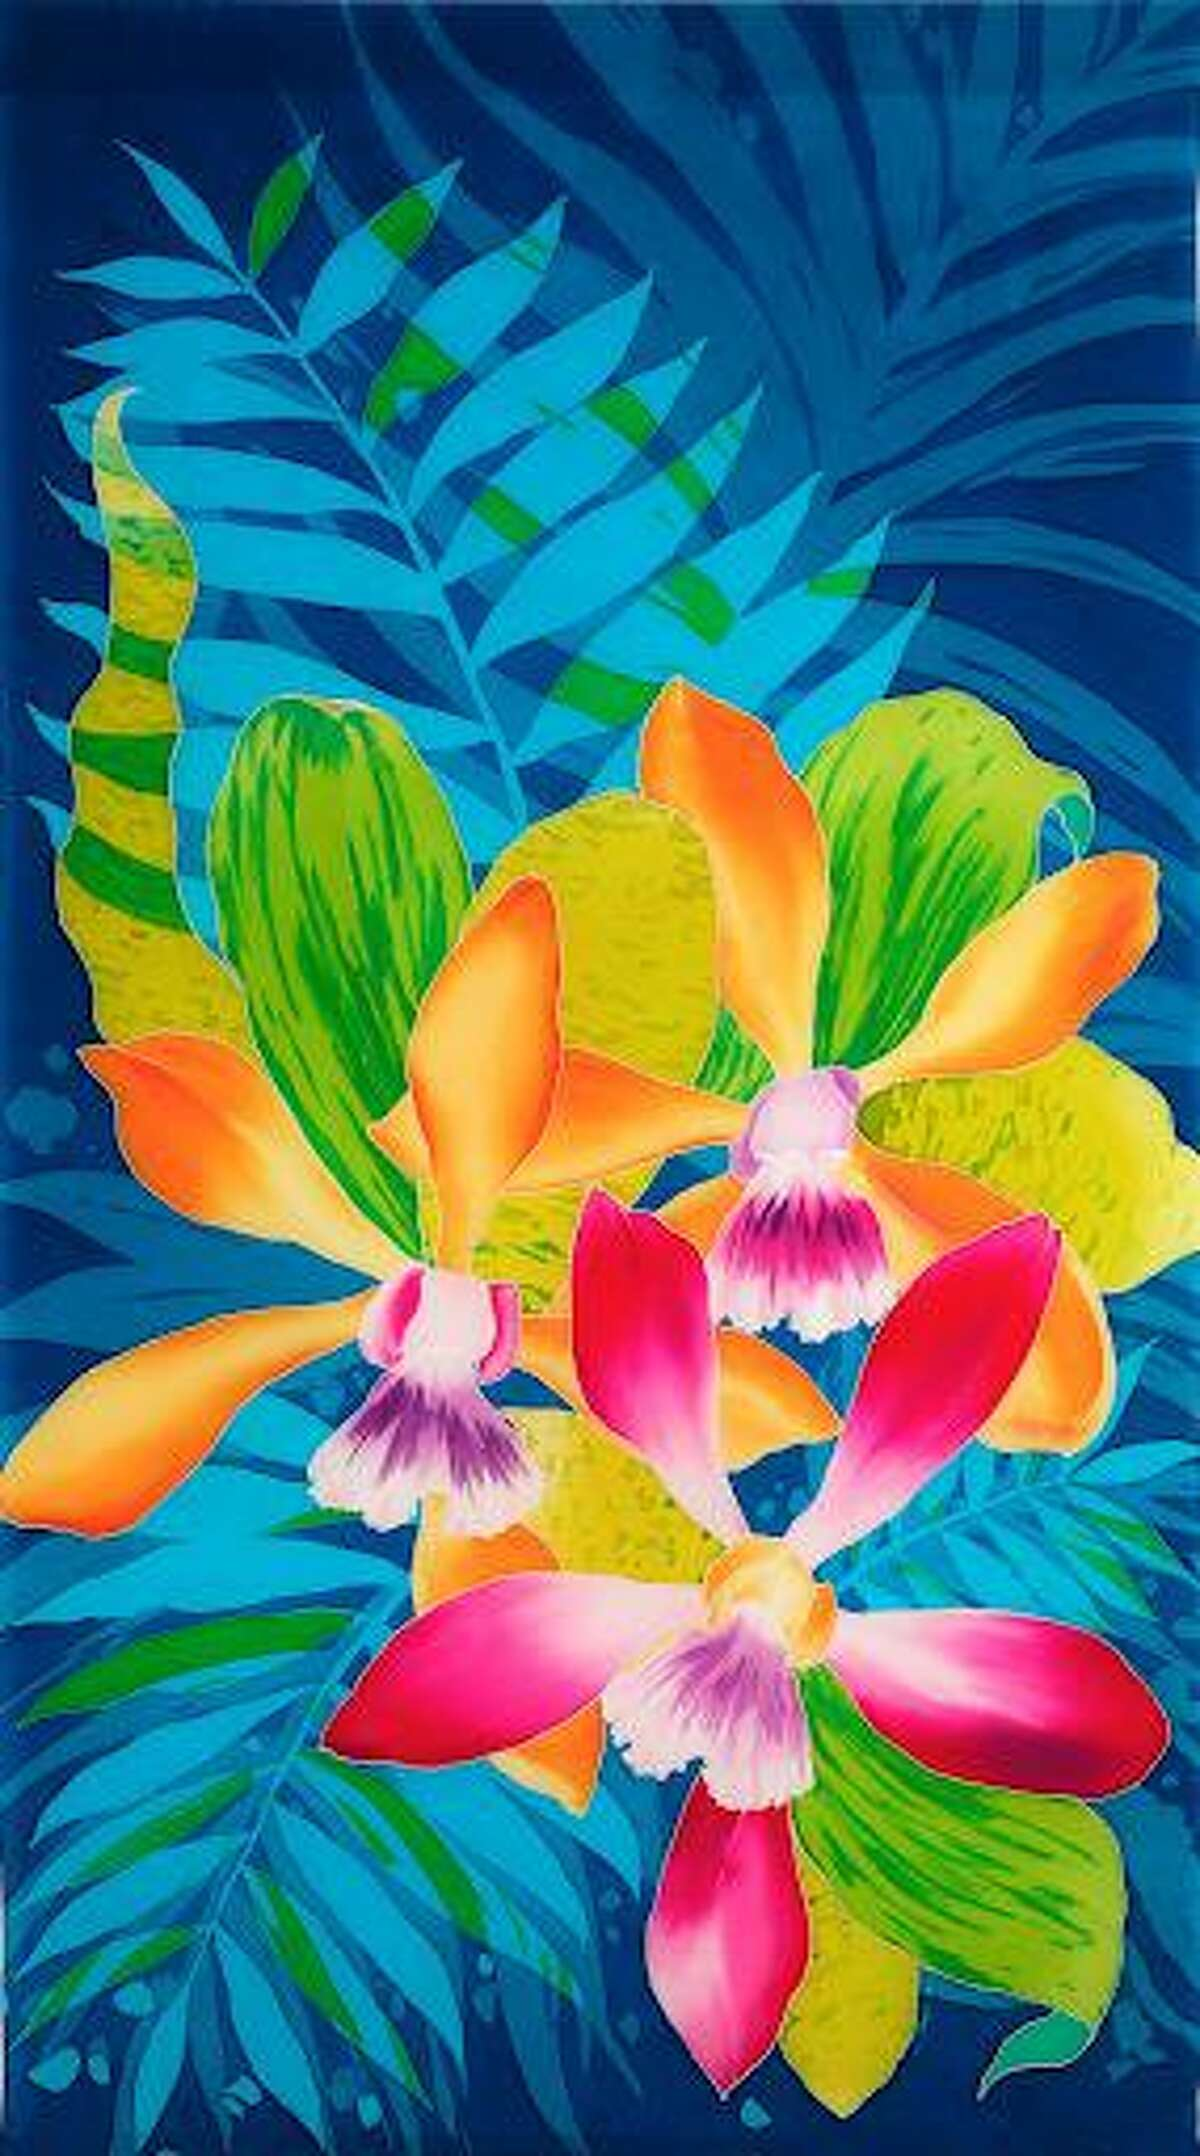 Orchids on Blue Fern by Sissi Siska is featured in Wilton Library's exhibition, Silk Painters International, on view now through Oct. 3.